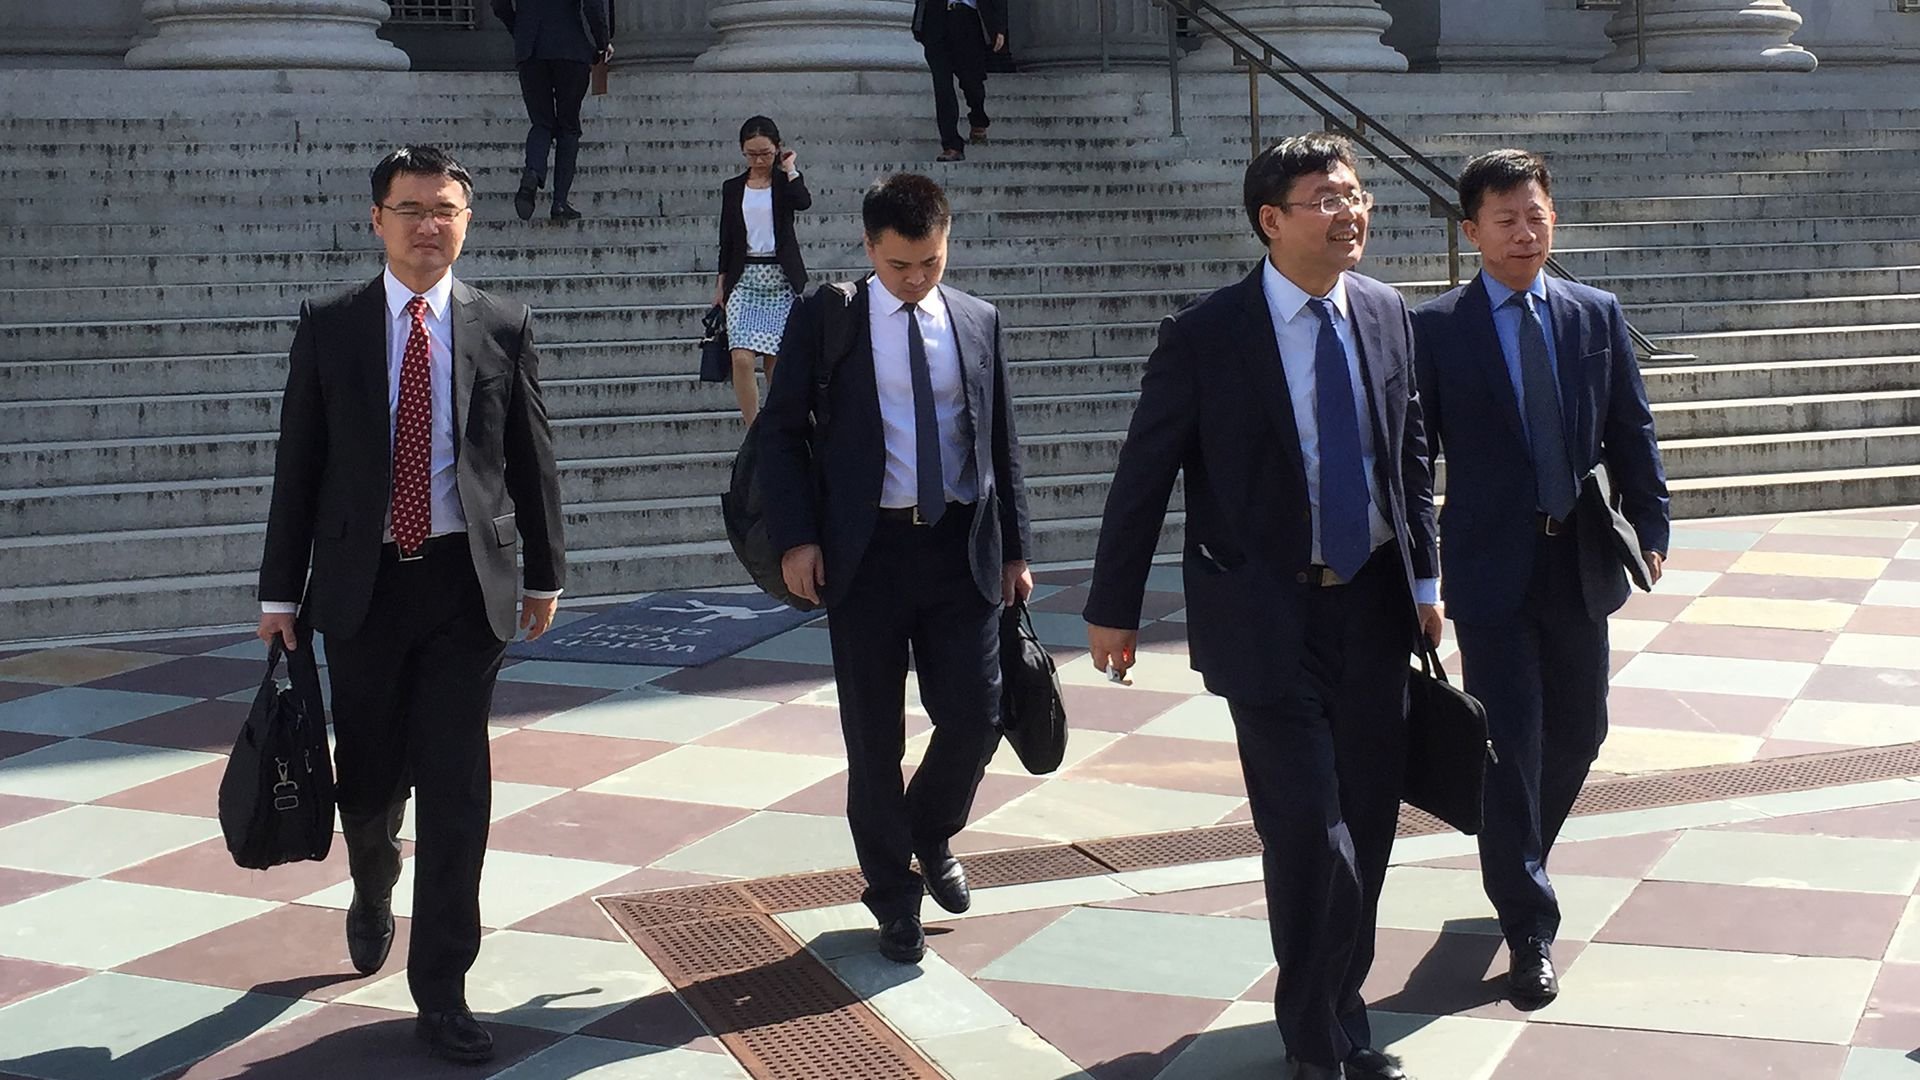 Photo of members of China trade delegation leaving unsuccessful meeting in D.C.